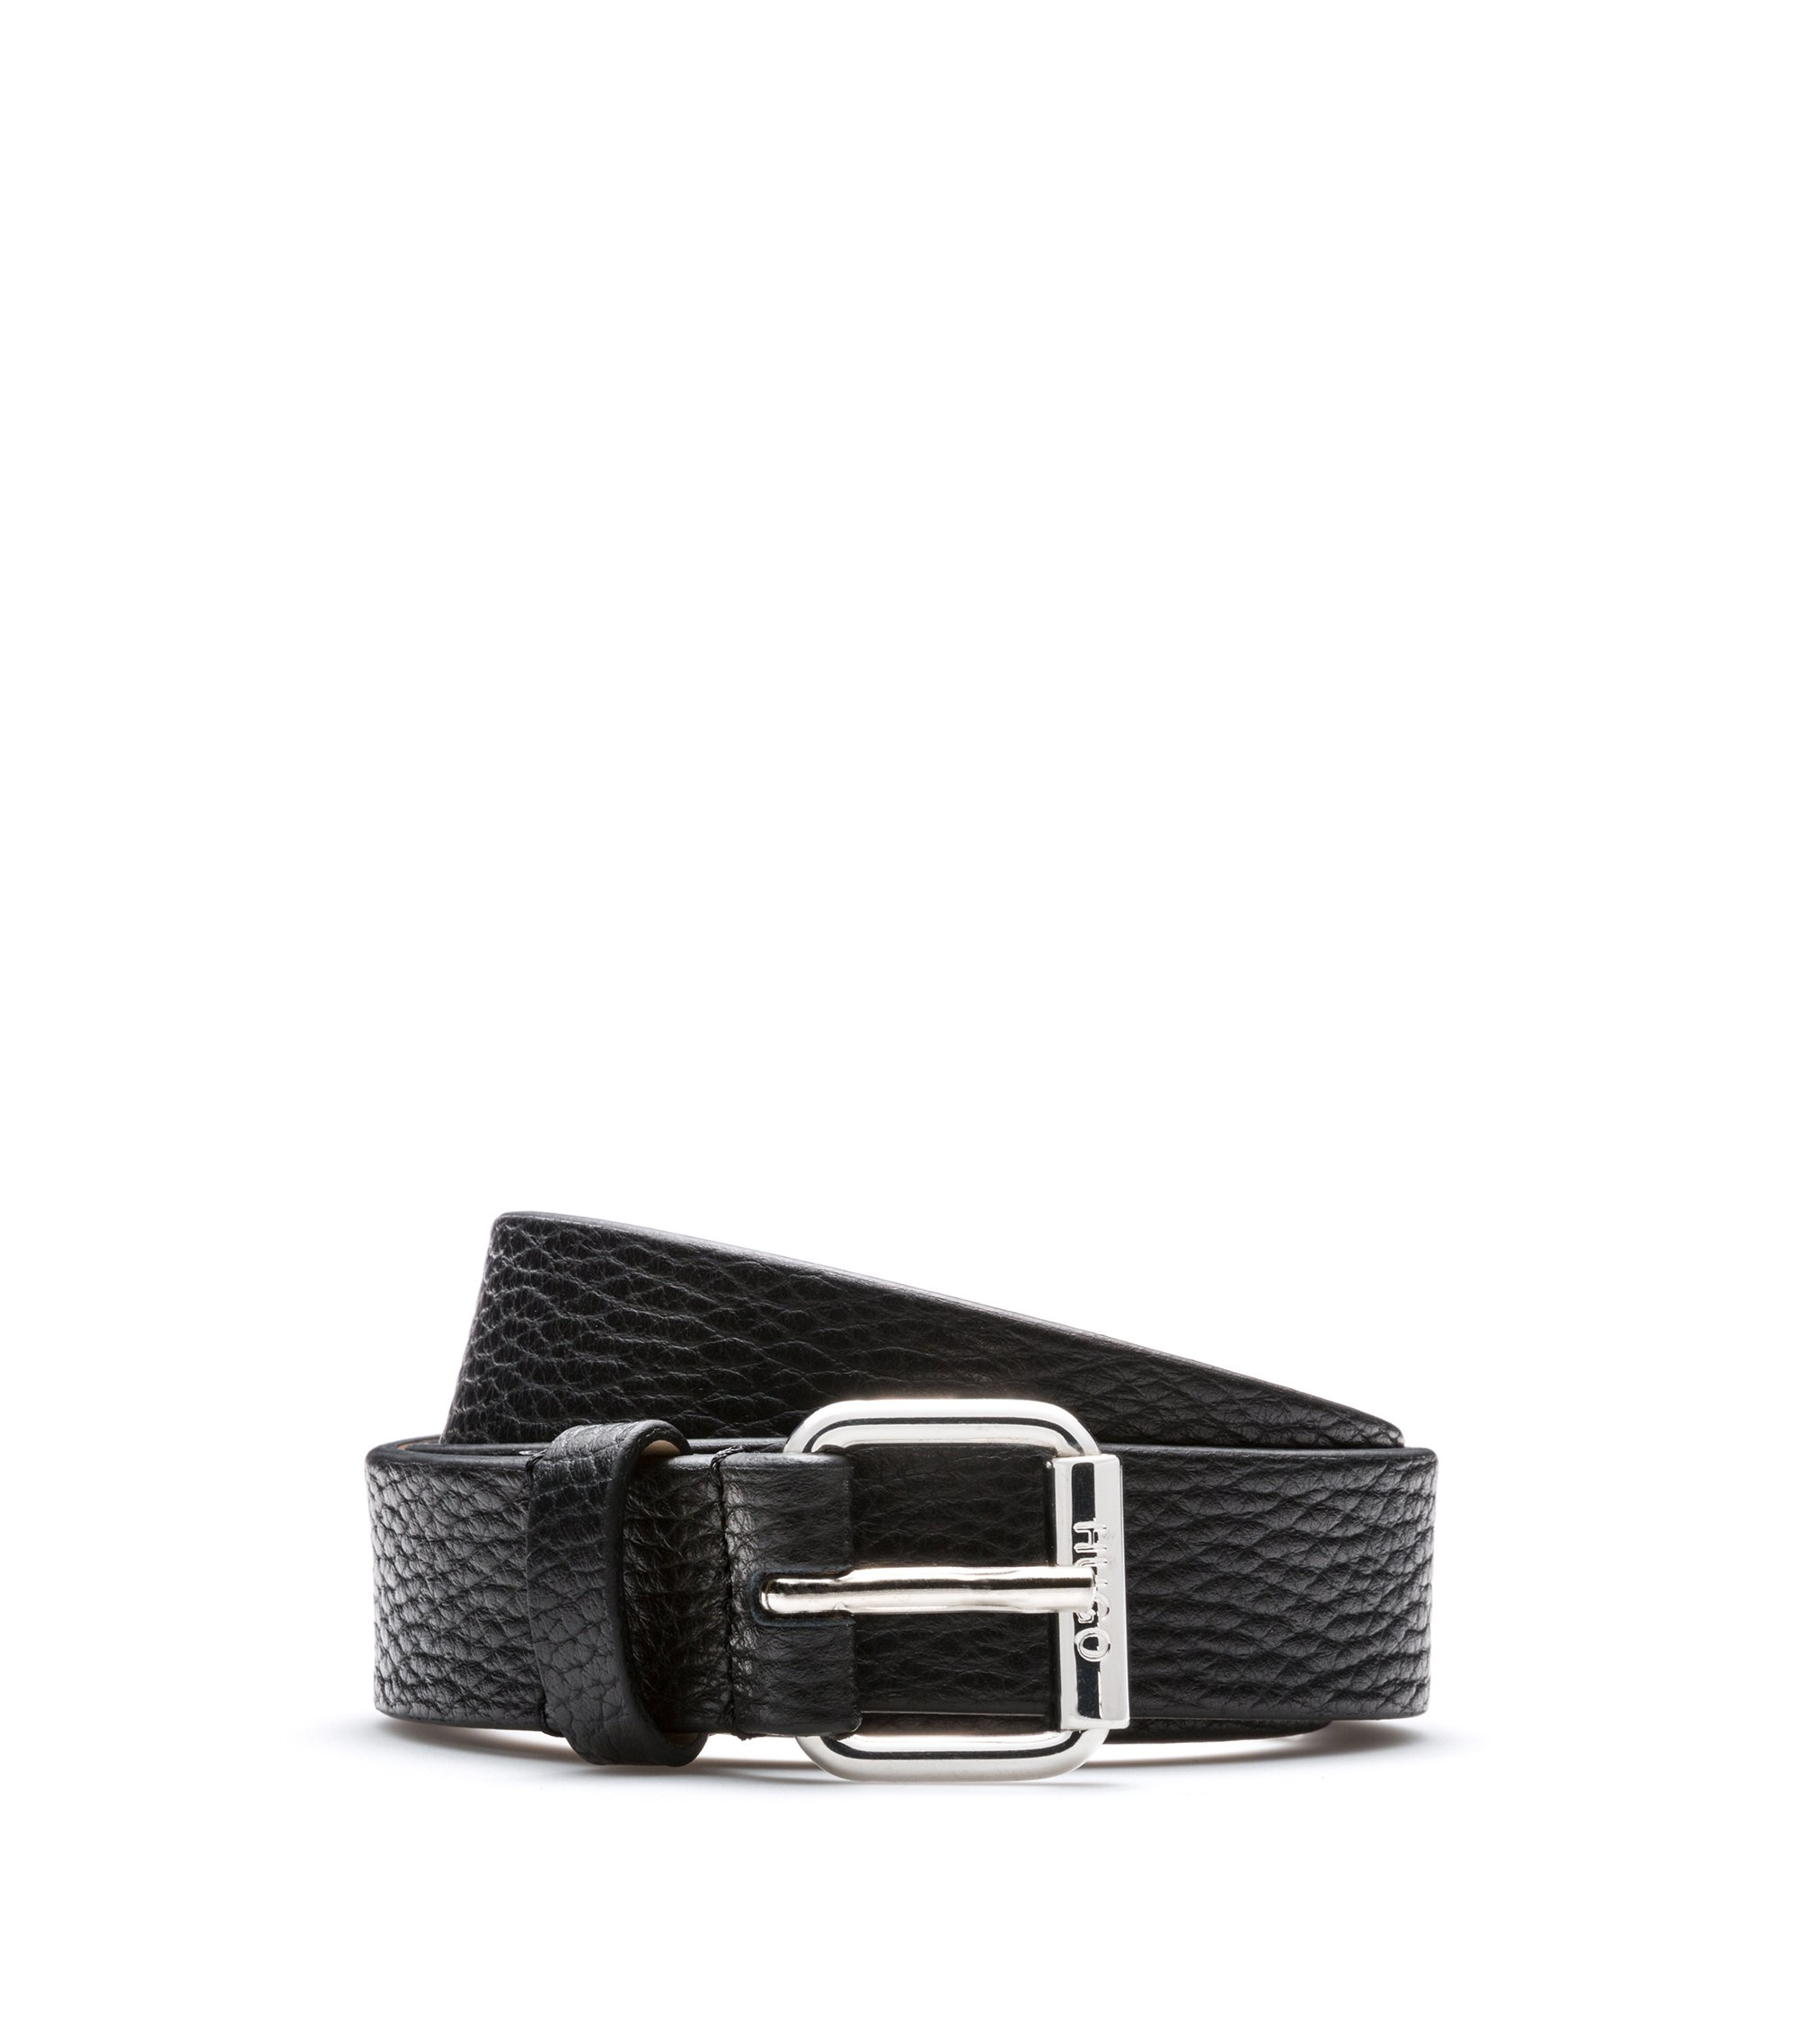 Grained-leather belt with polished buckle, Black